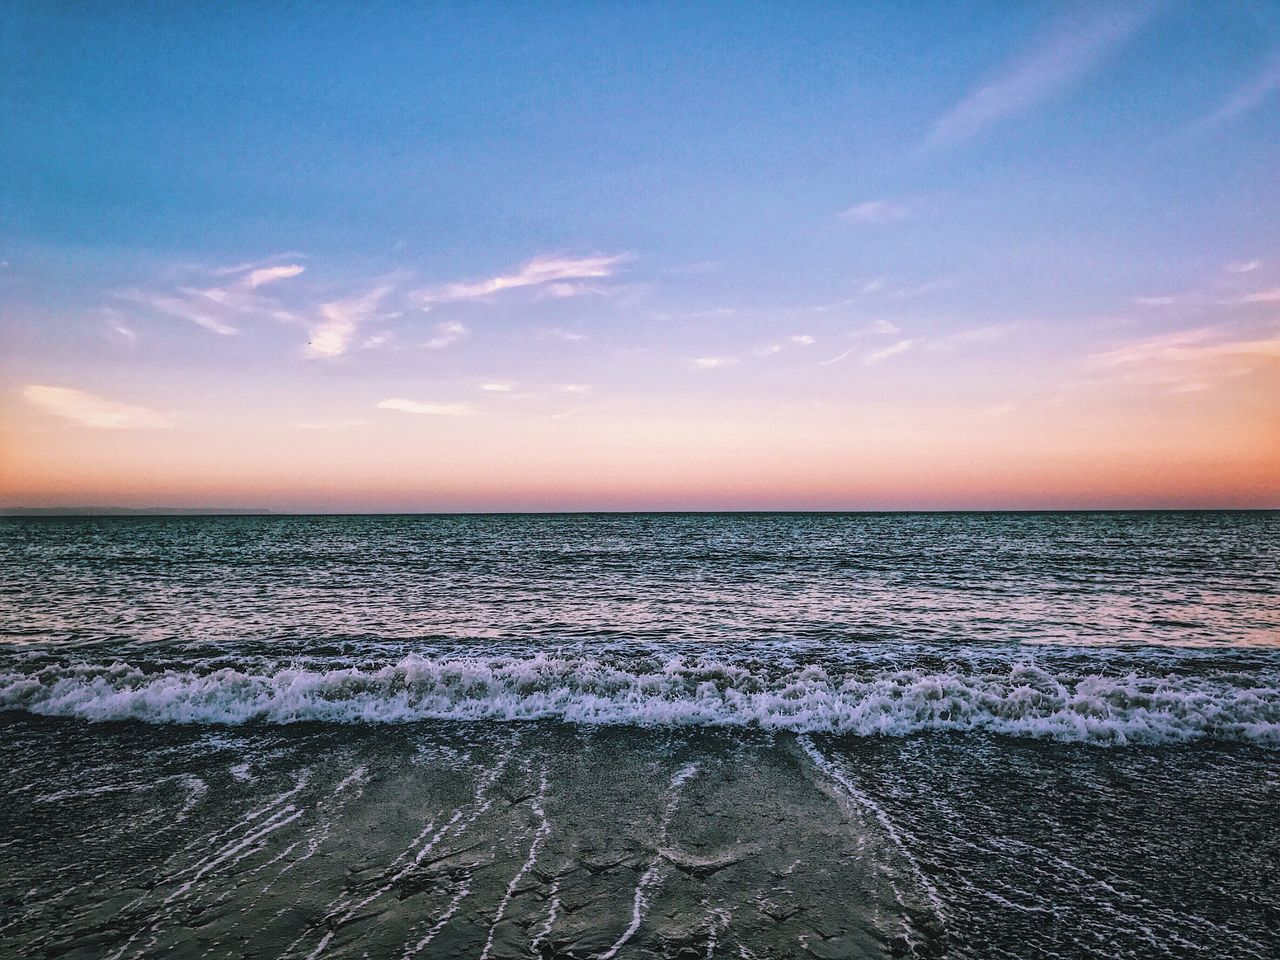 sea, scenics, beauty in nature, horizon over water, sunset, tranquility, nature, tranquil scene, sky, water, no people, cloud - sky, outdoors, beach, wave, day